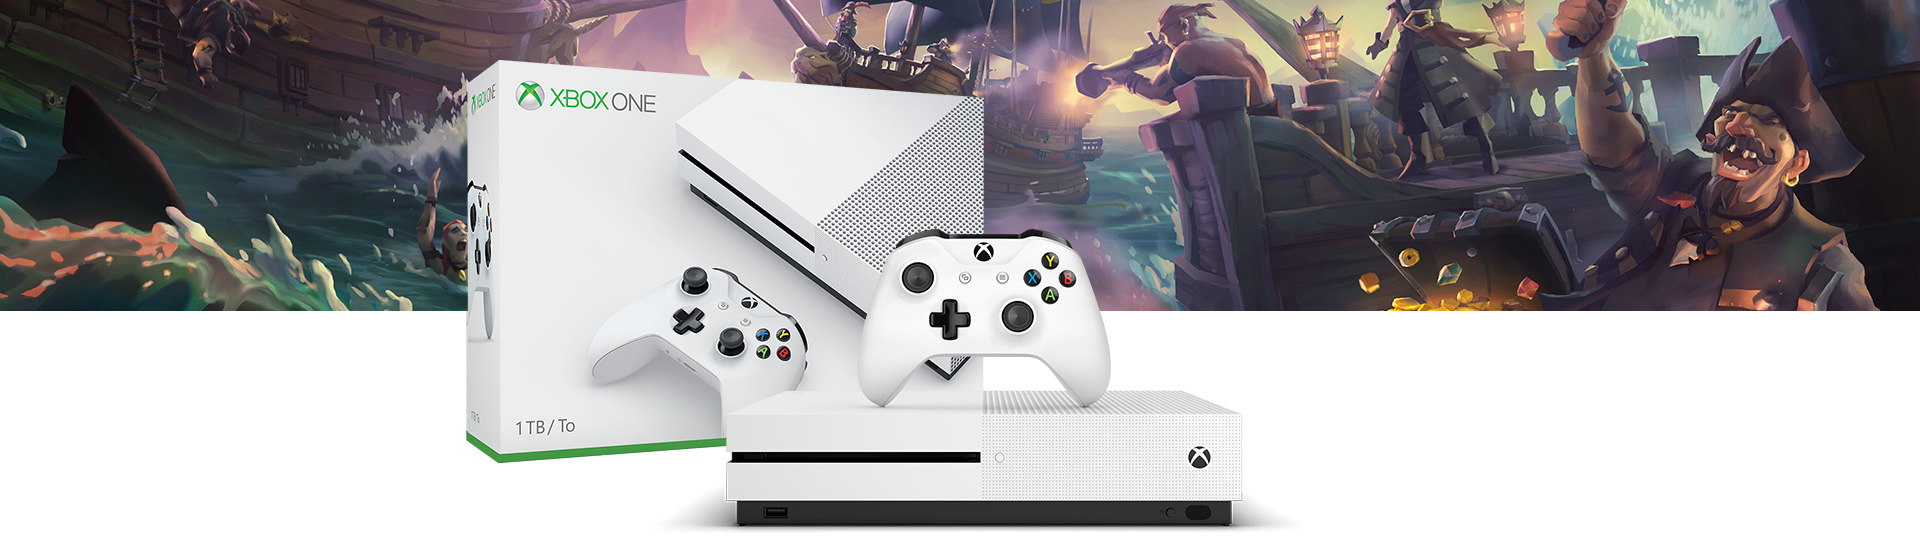 Xbox One S Sea of Thieves (1TB) console bundle